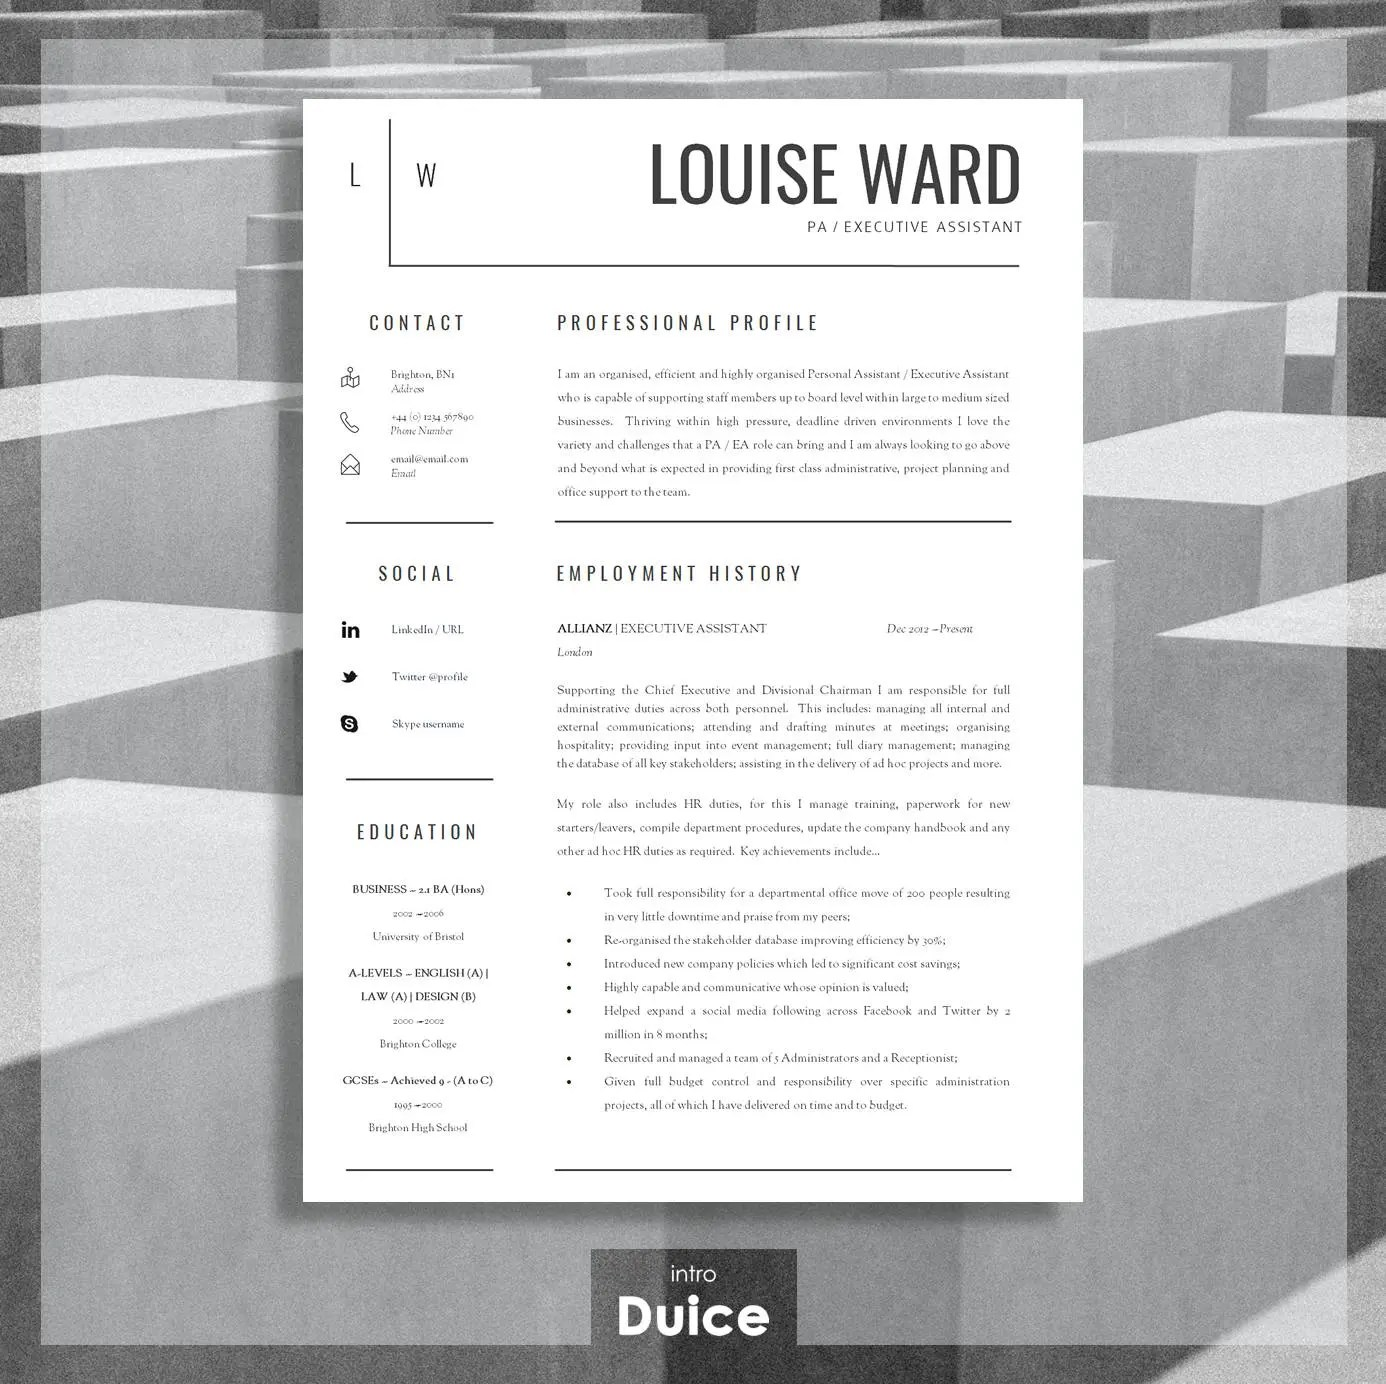 Resume Template CV Template Cover Letter Resume Advice - resume and cover letter